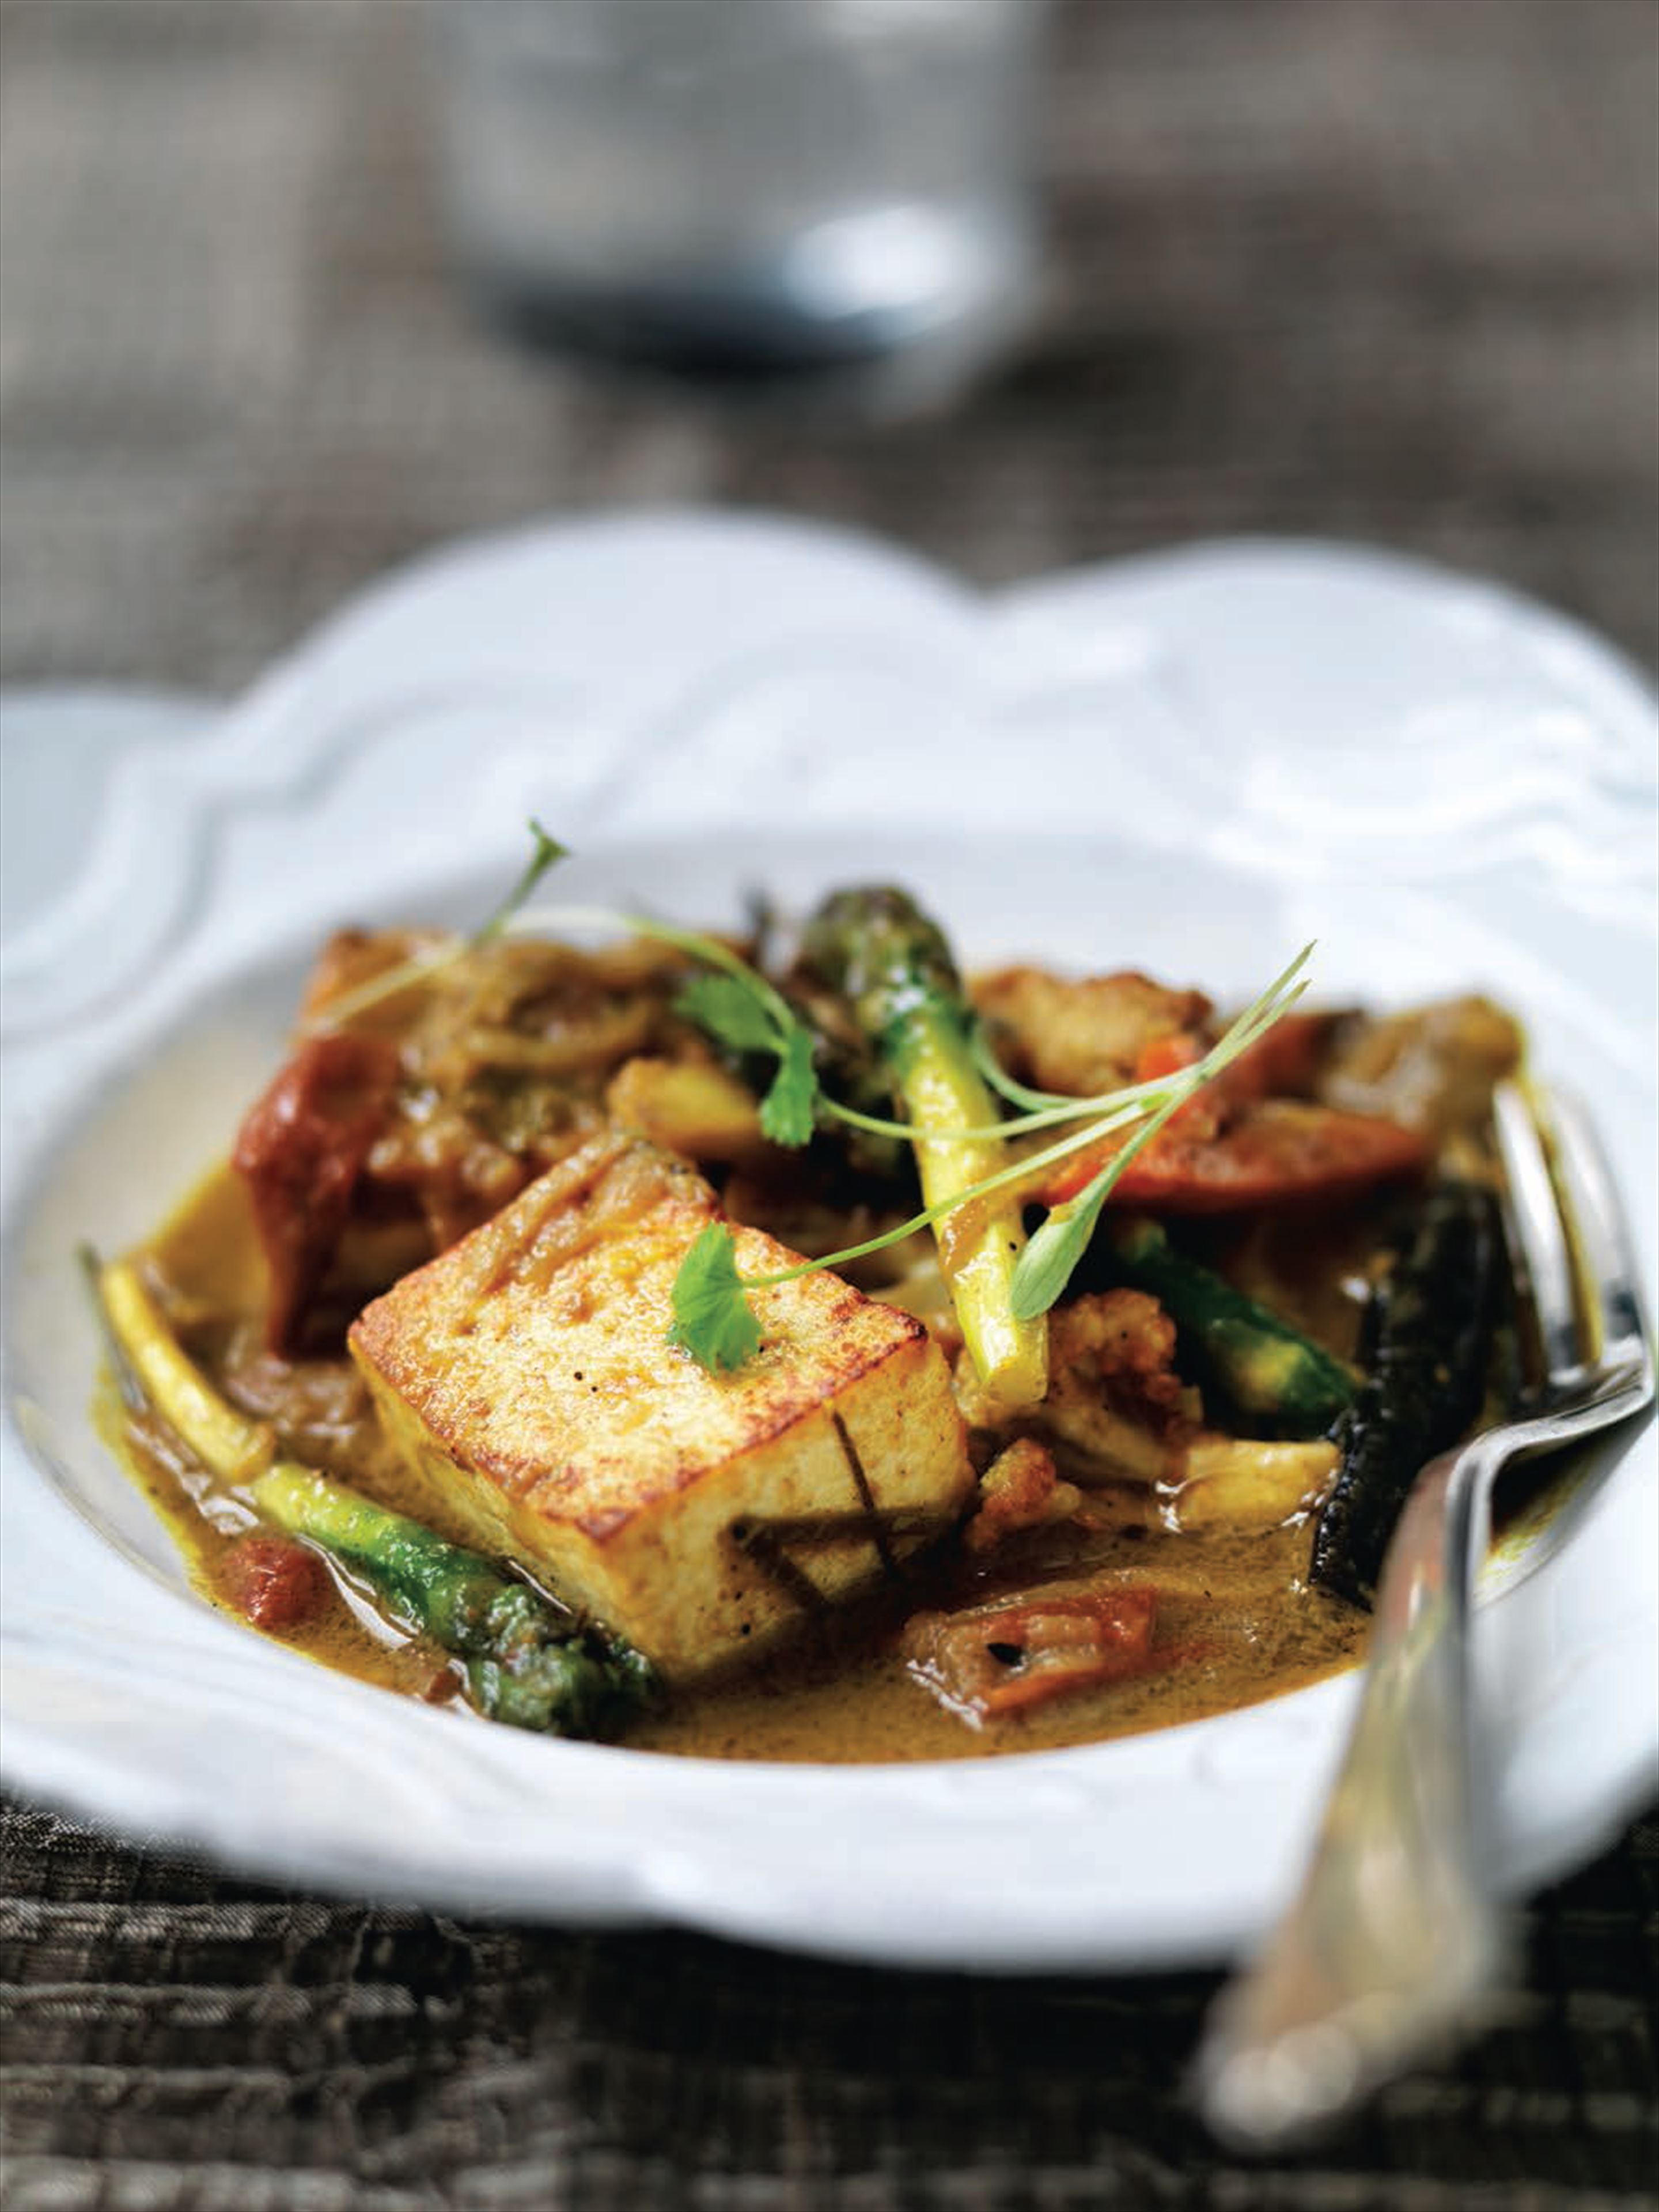 Vegetable and tofu curry (Vietnam)